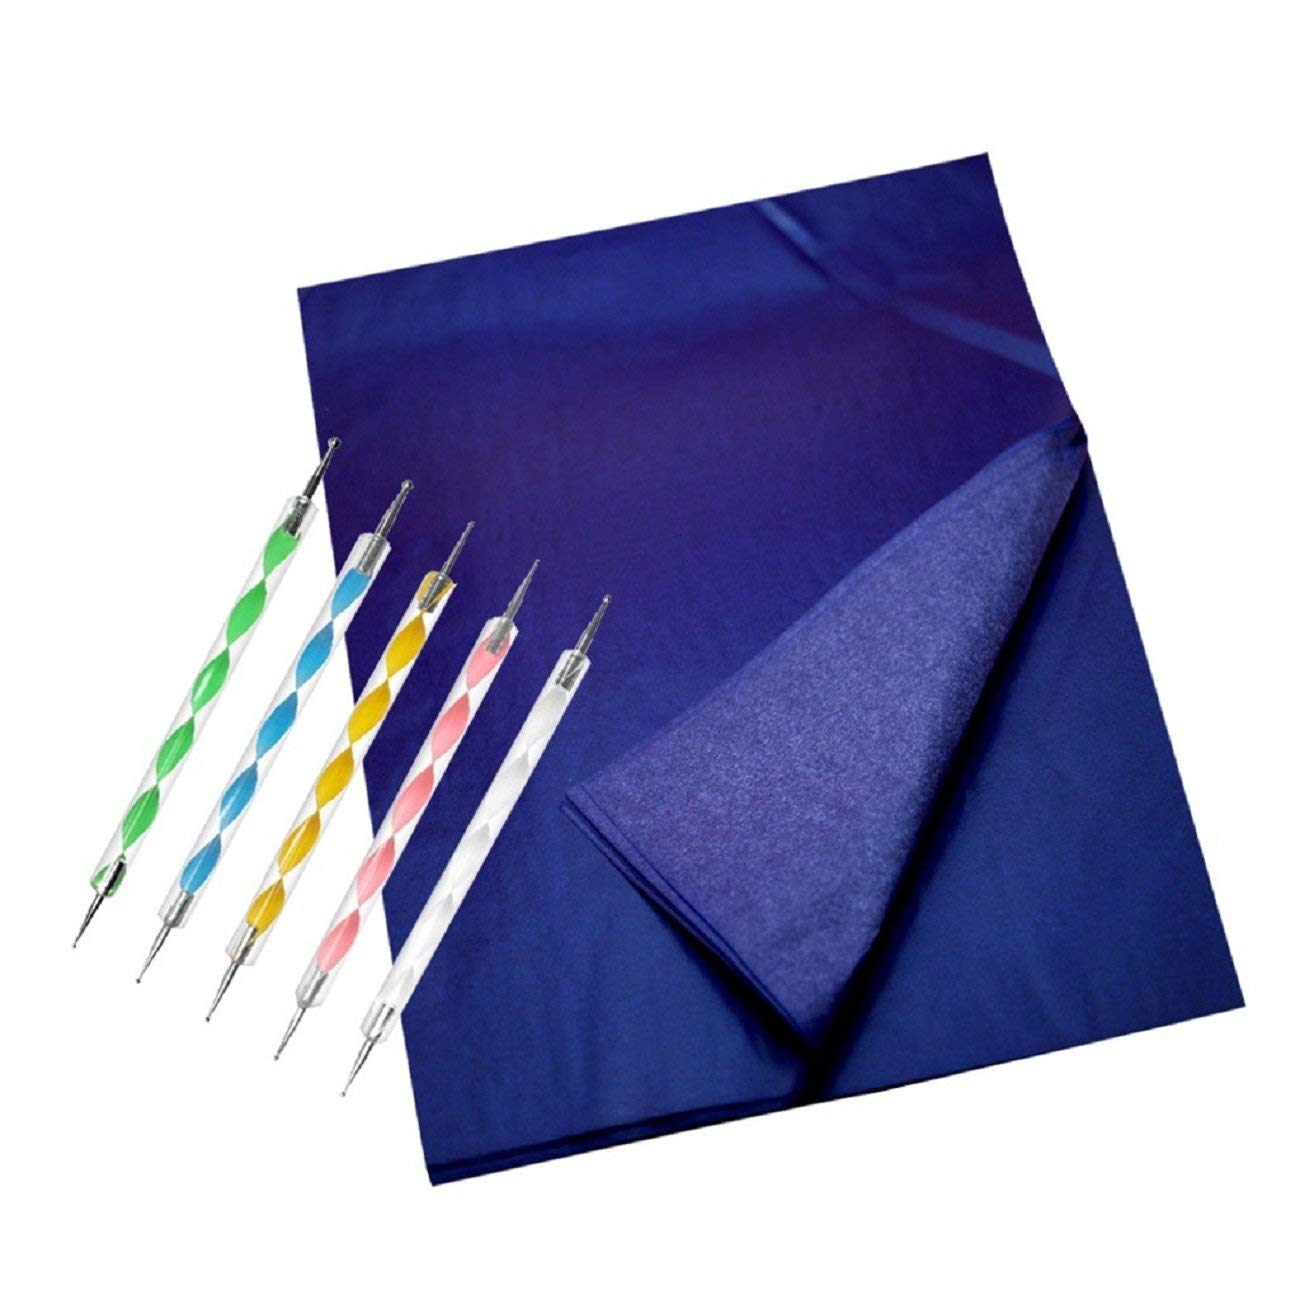 Putars Multicolor 200 Carbon Blue Transfer Tracing Drawings and 5 Ball Embossing Pens Printing Paper Convenience DIY Design